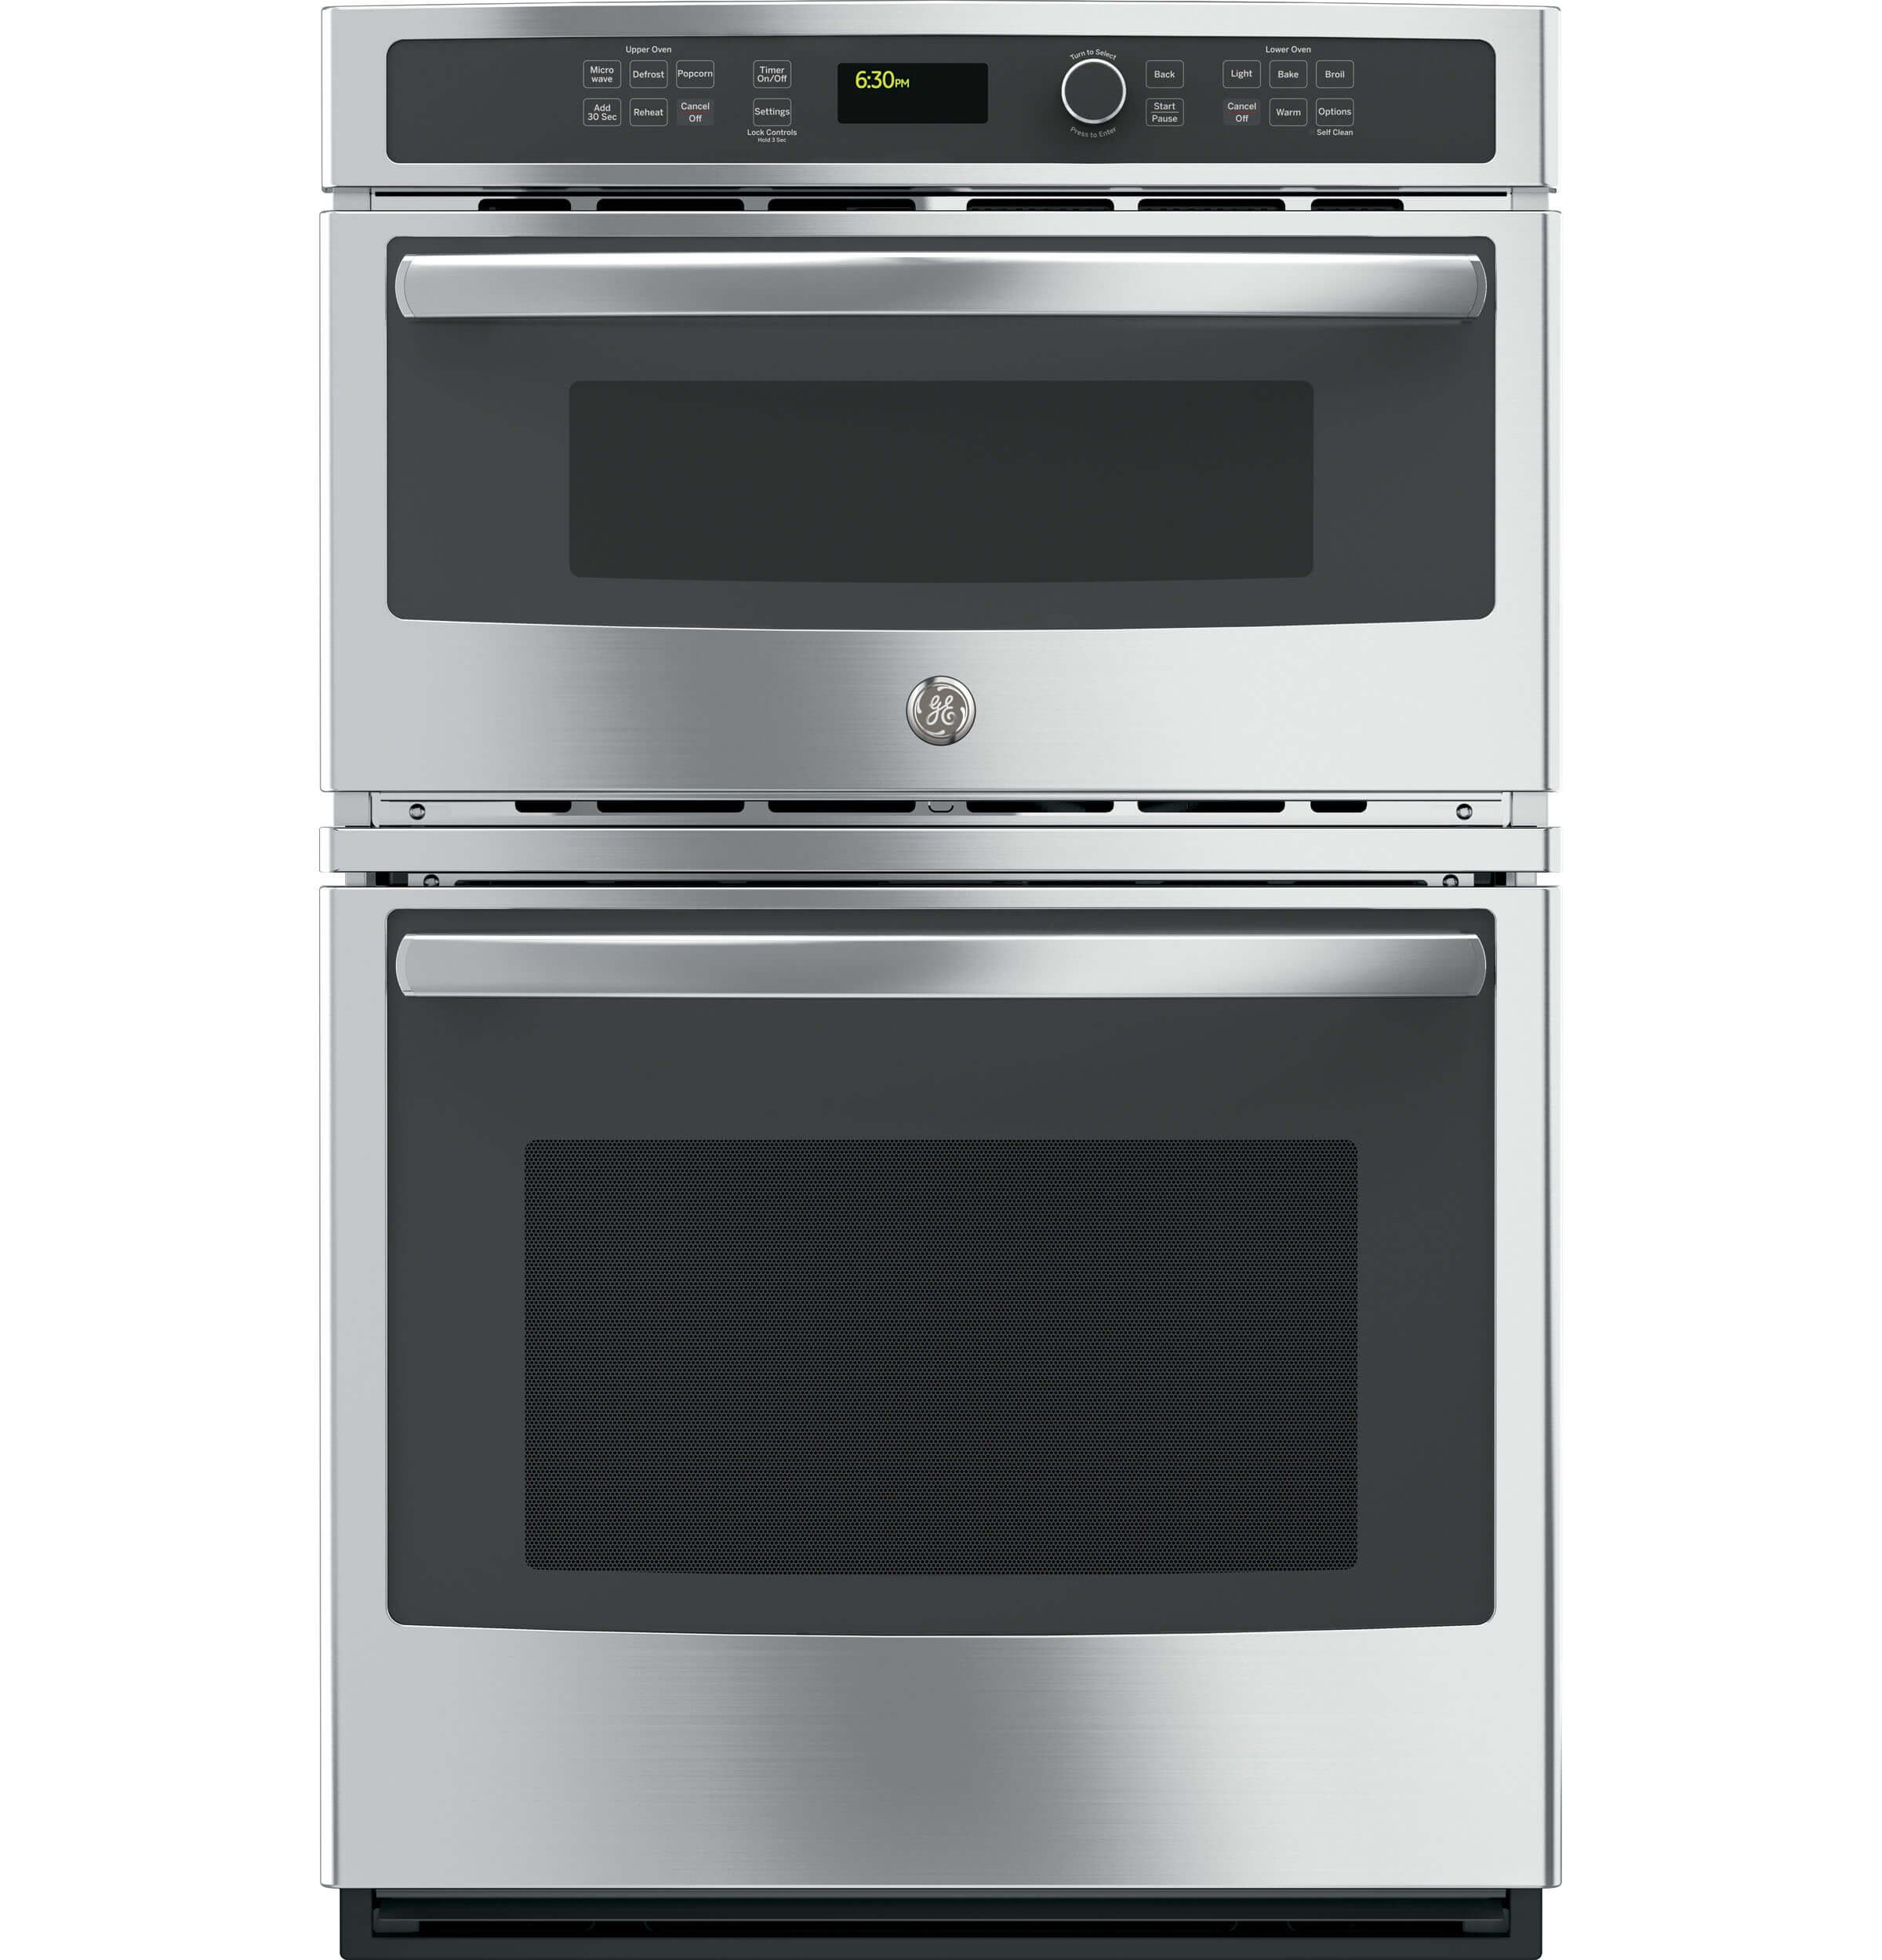 GE JK3800SHSS Combination Wall Oven by GE